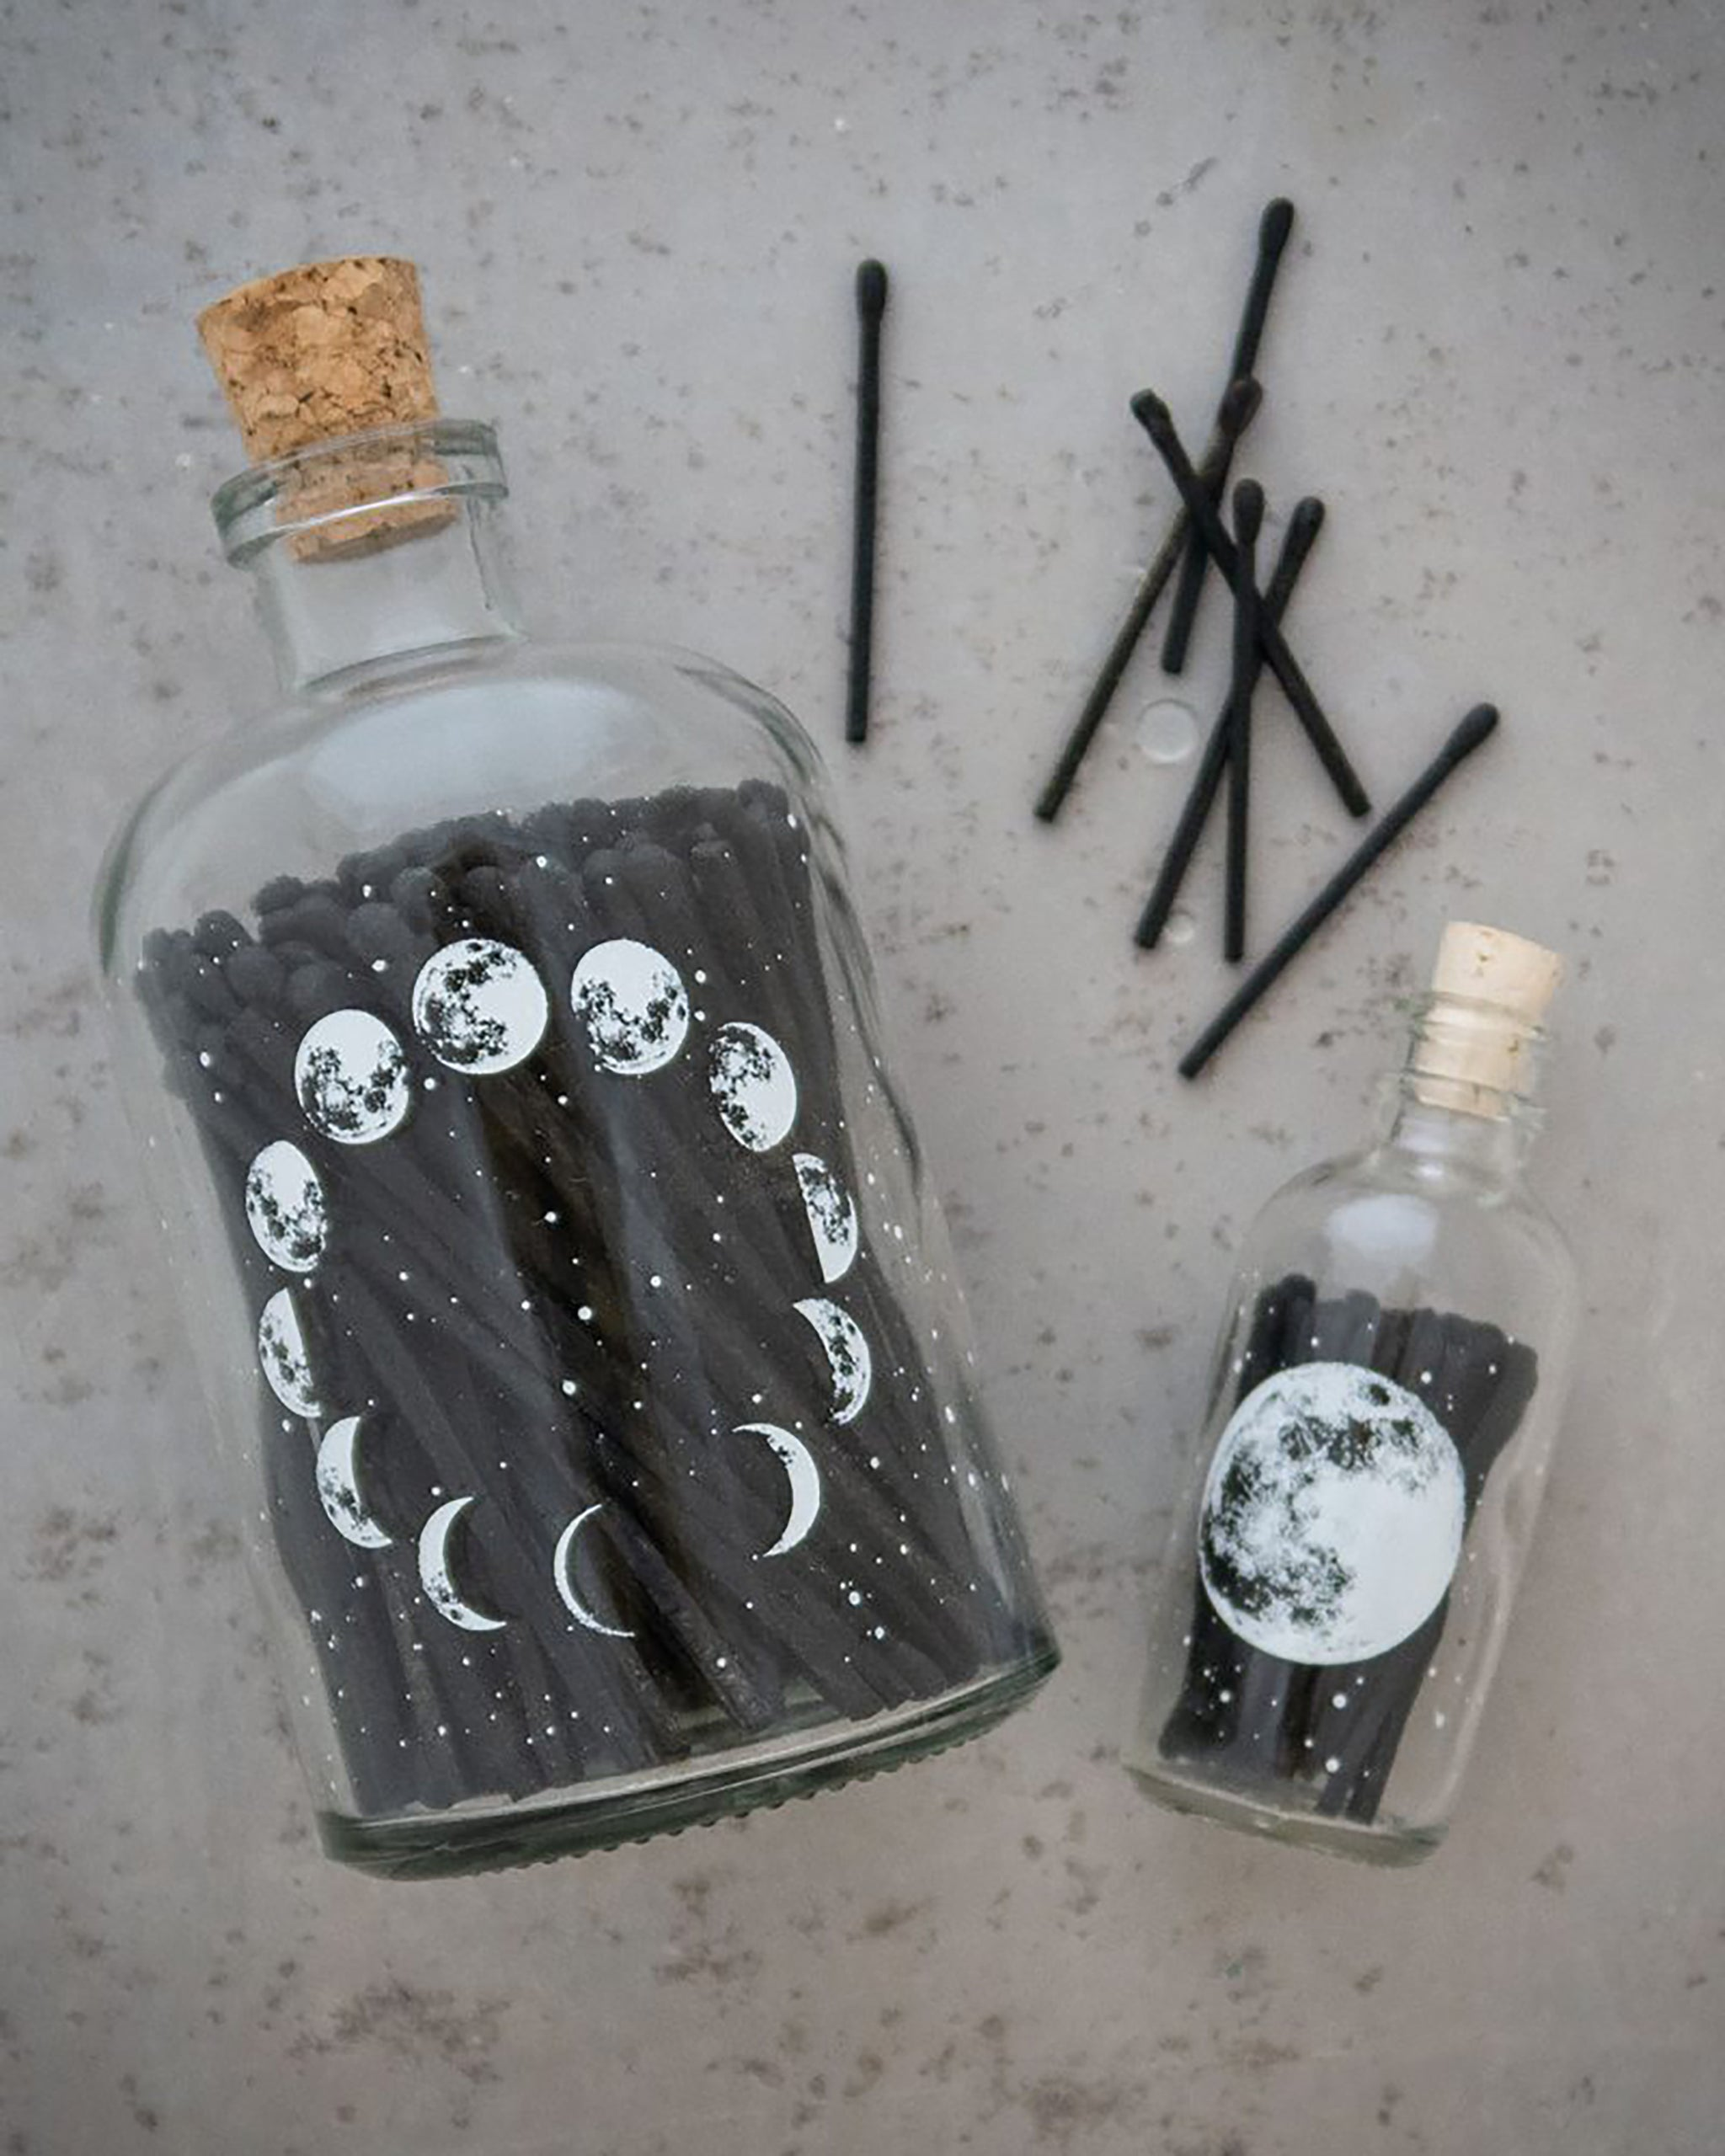 LARGE MOON MATCH JAR